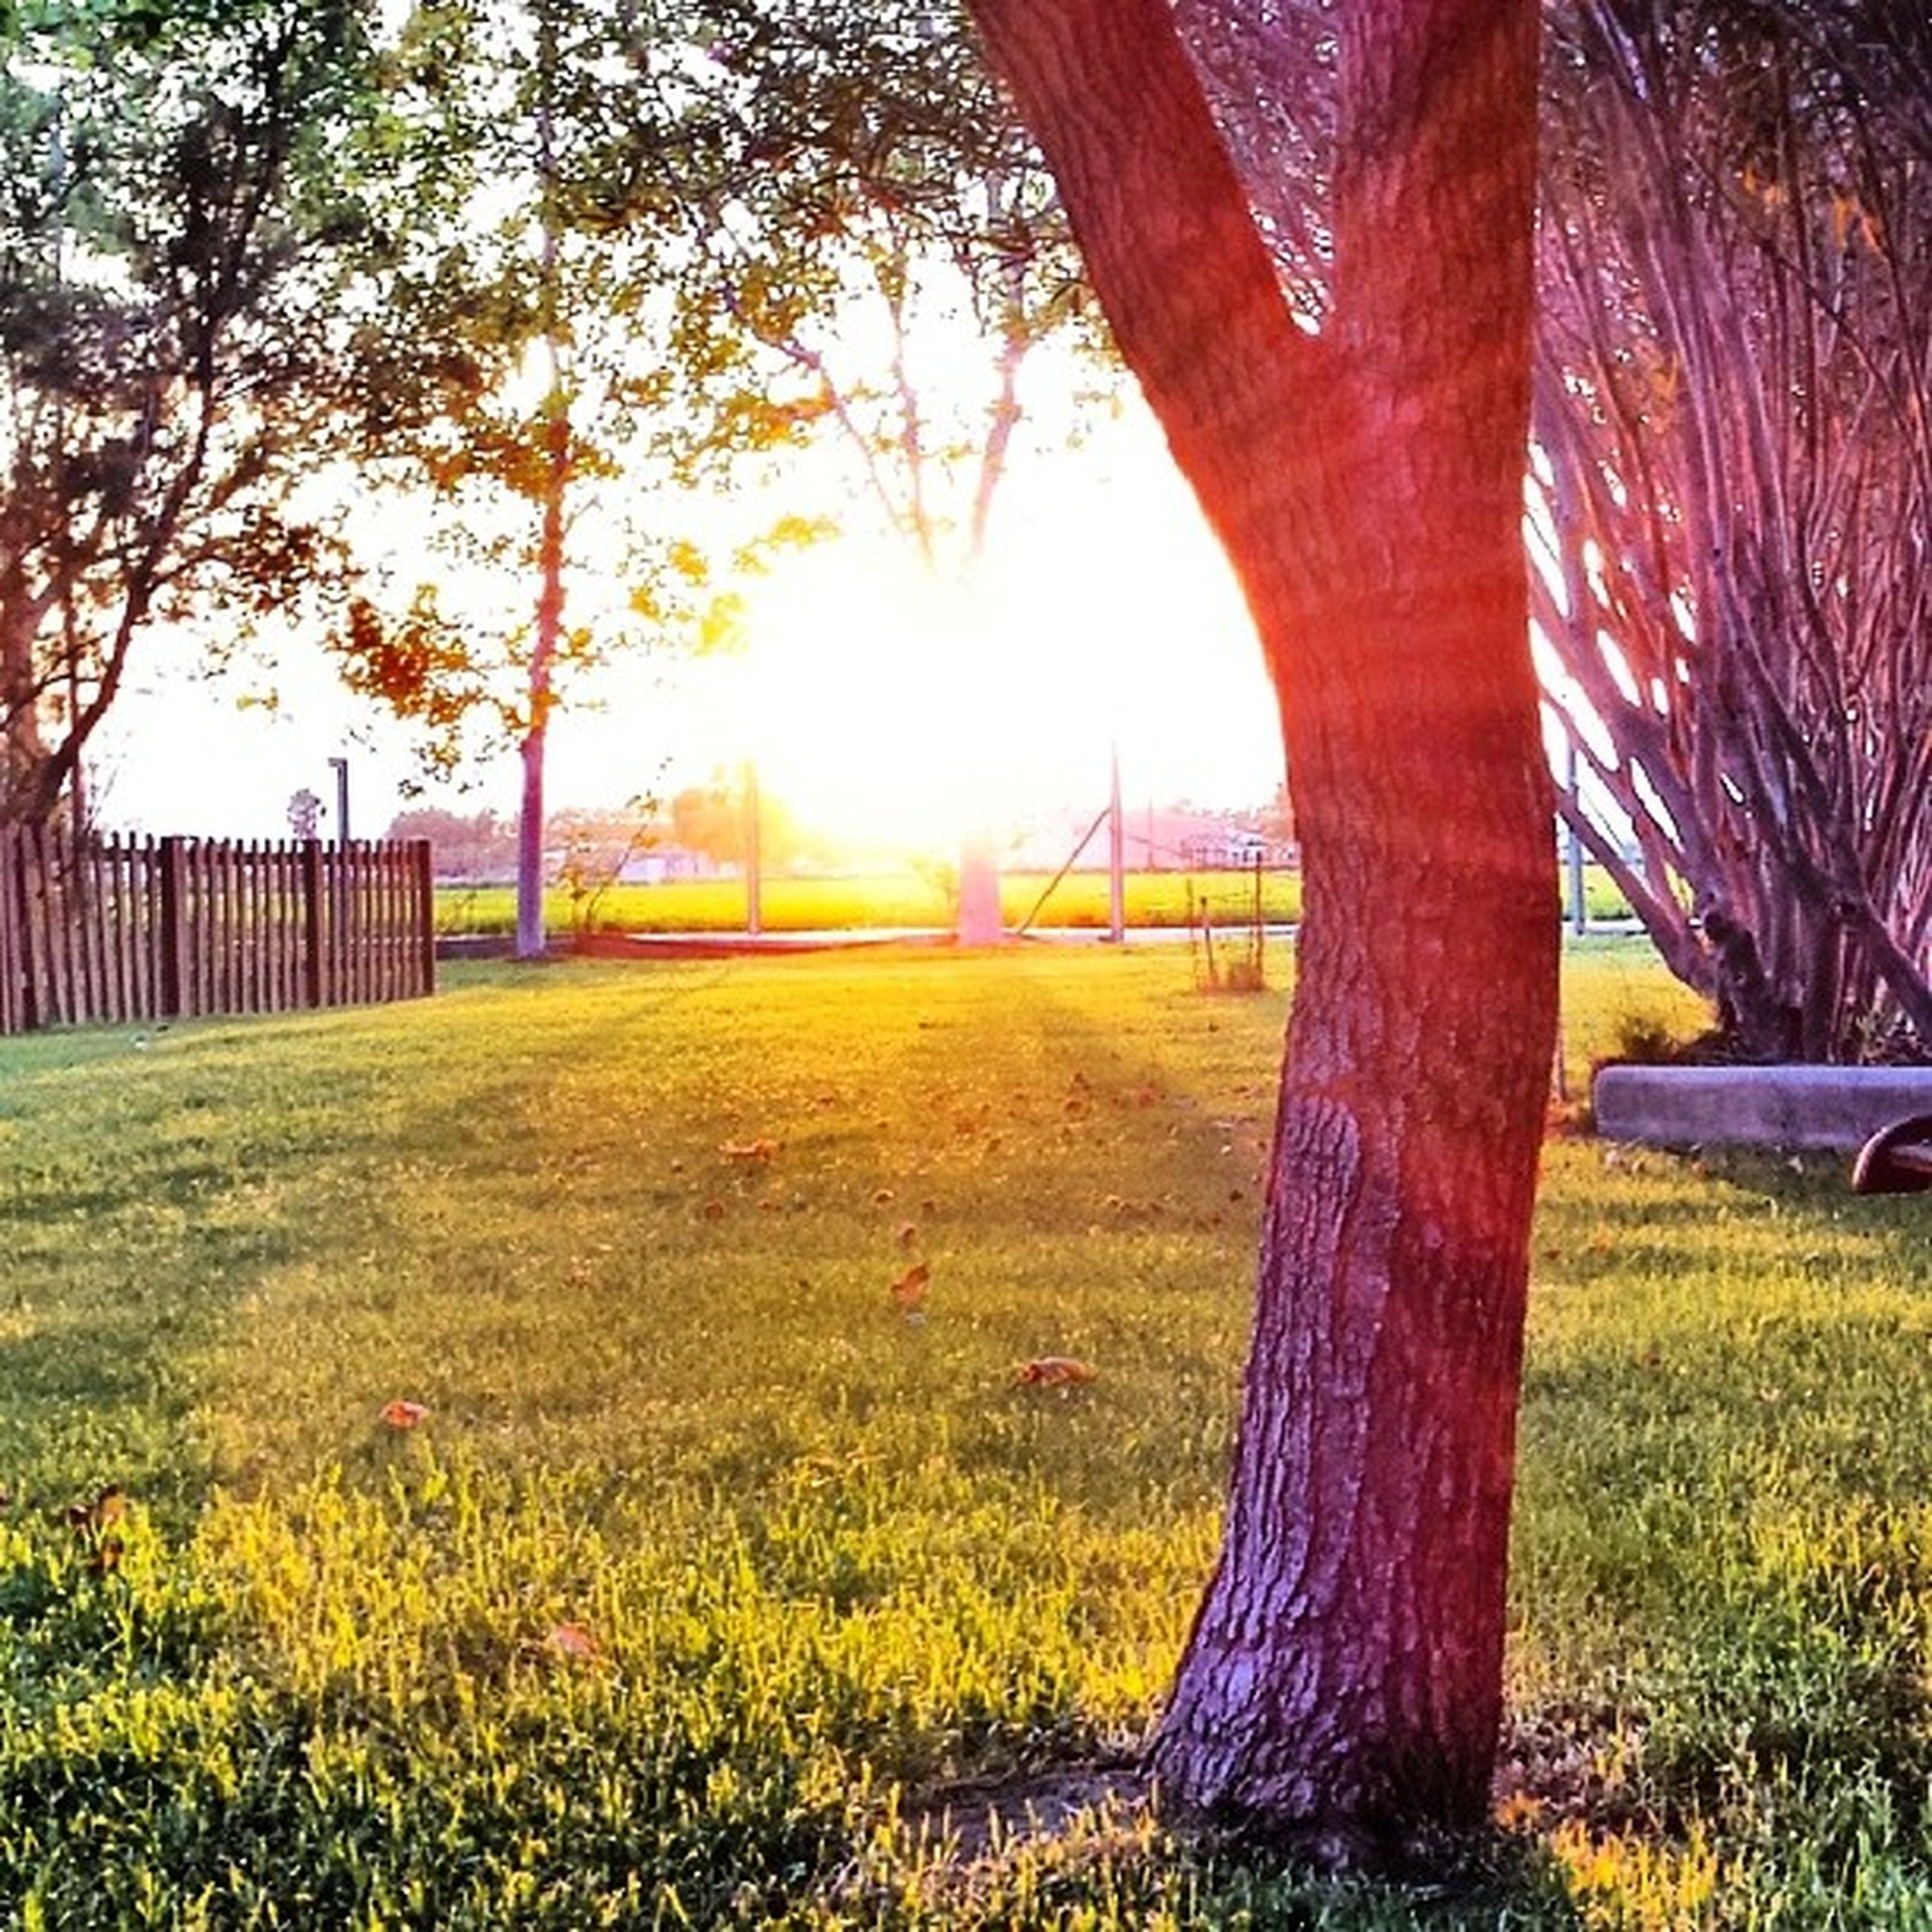 tree, grass, sunlight, sun, tree trunk, sunbeam, park - man made space, field, lawn, growth, grassy, lens flare, nature, tranquility, beauty in nature, built structure, green color, shadow, branch, landscape